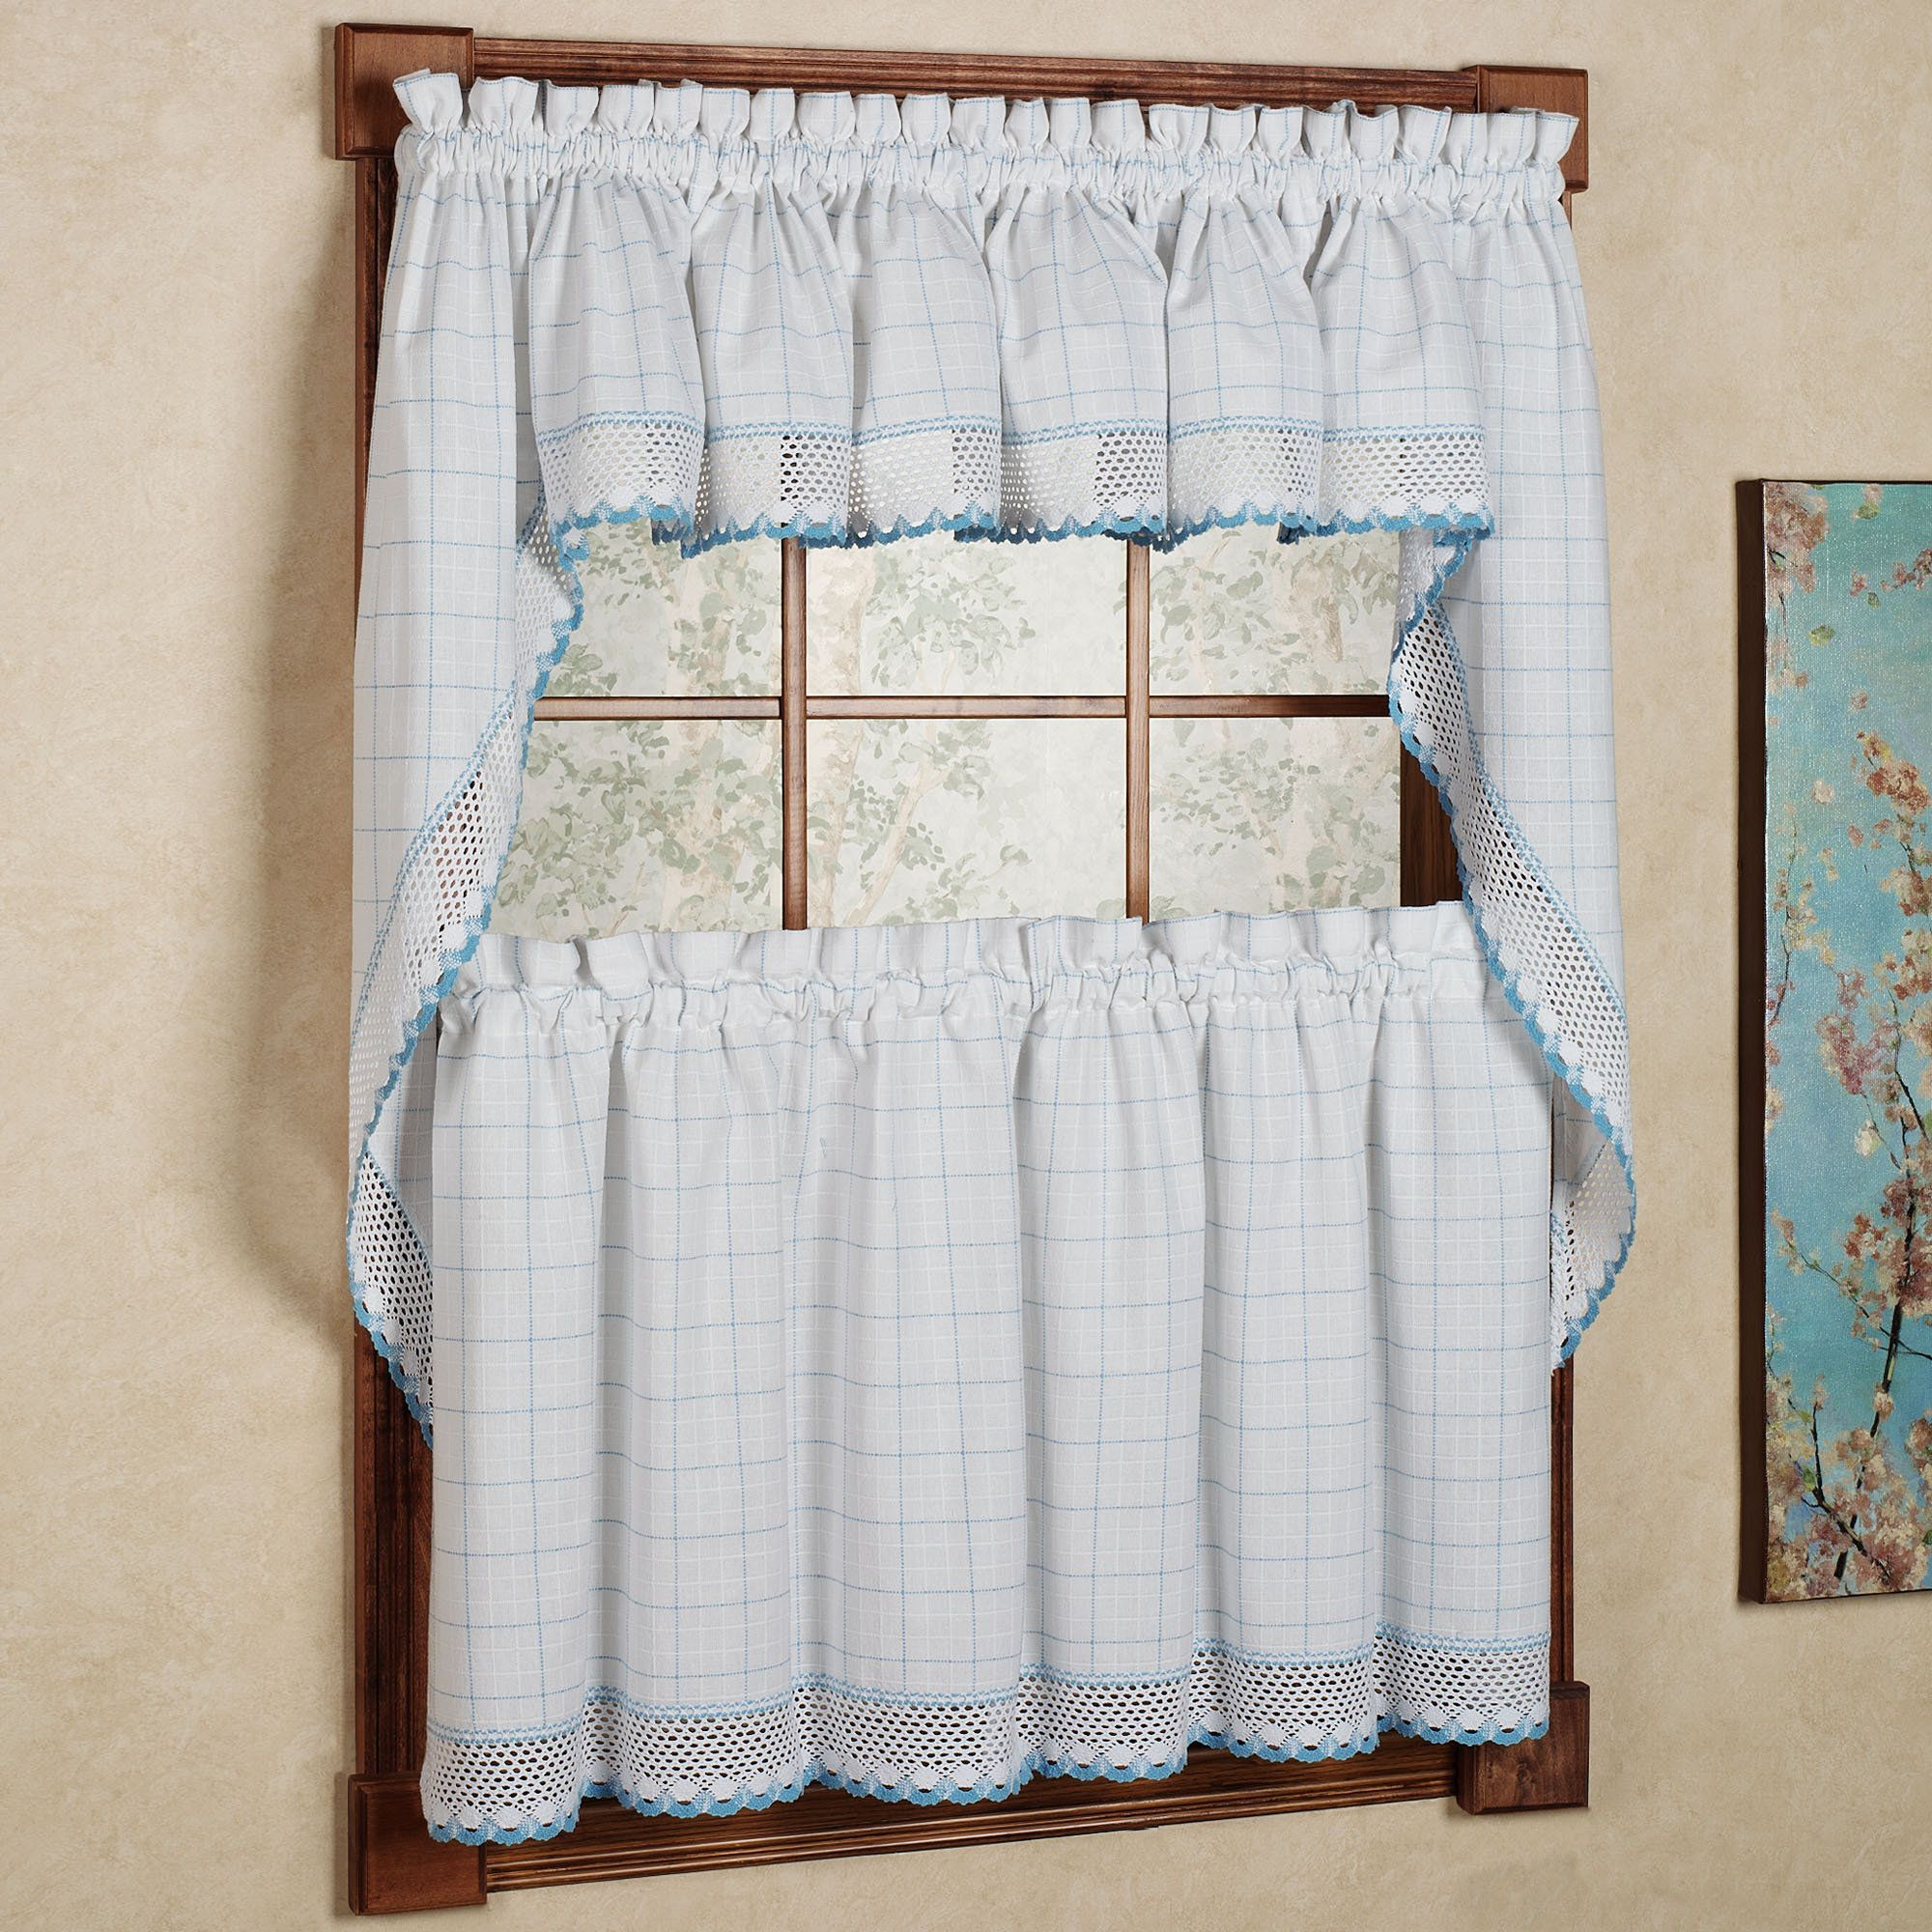 amish decoration plaid blue home pennys adorable window burlap valance for kitchen curtain ideas country straight treatments curtains valances pr gorgeous